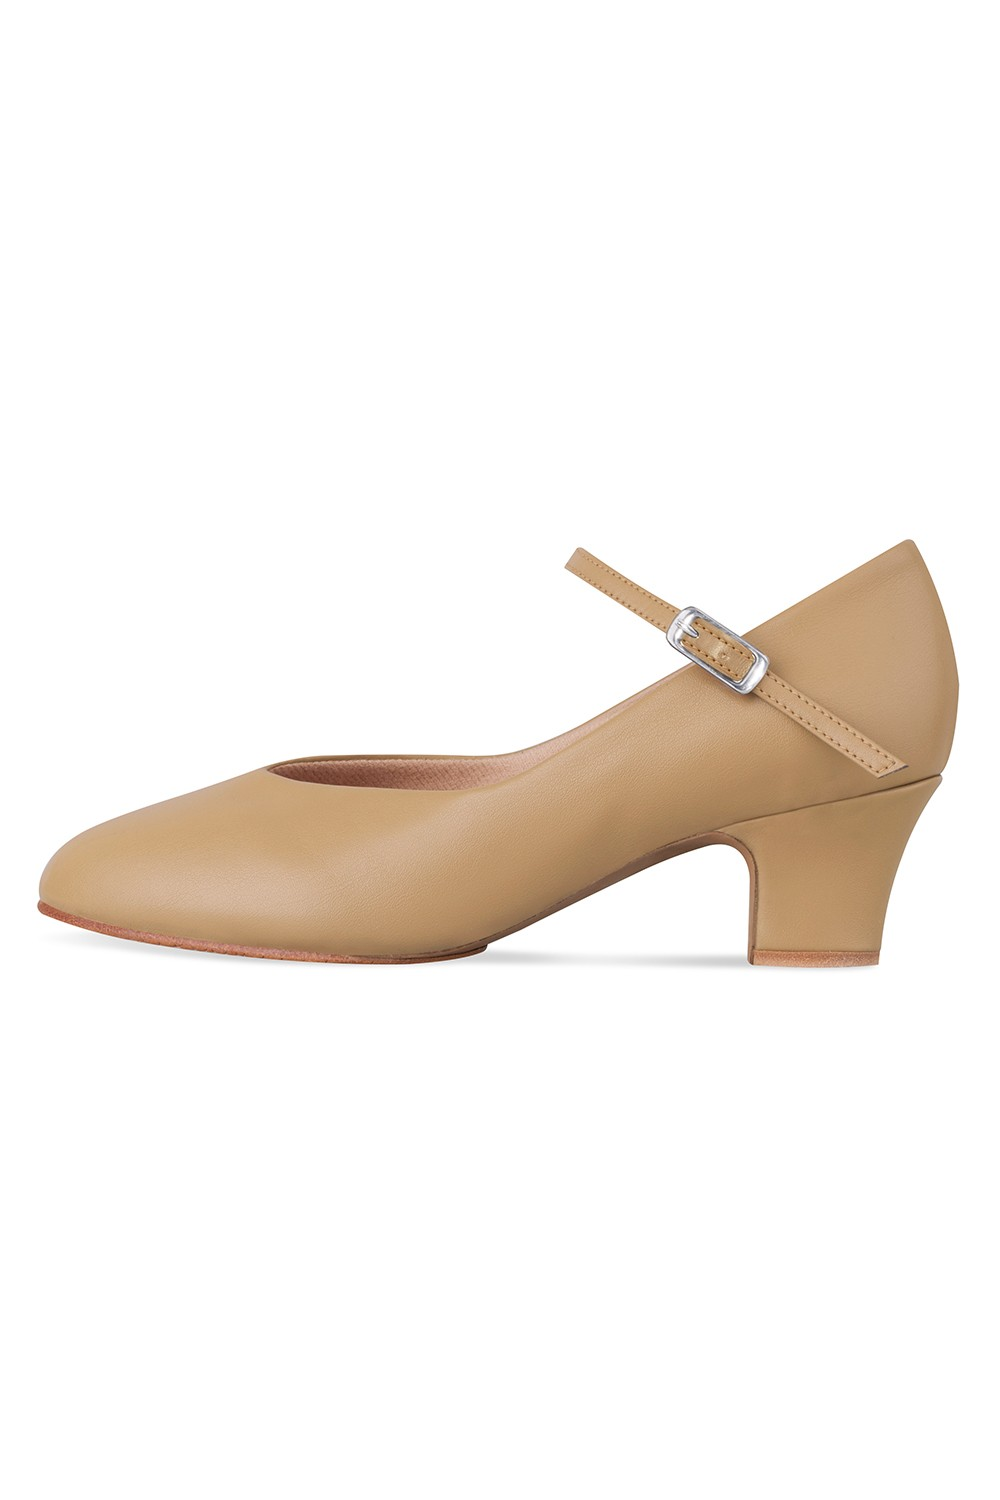 Broadway-baixo Women's Character Shoes